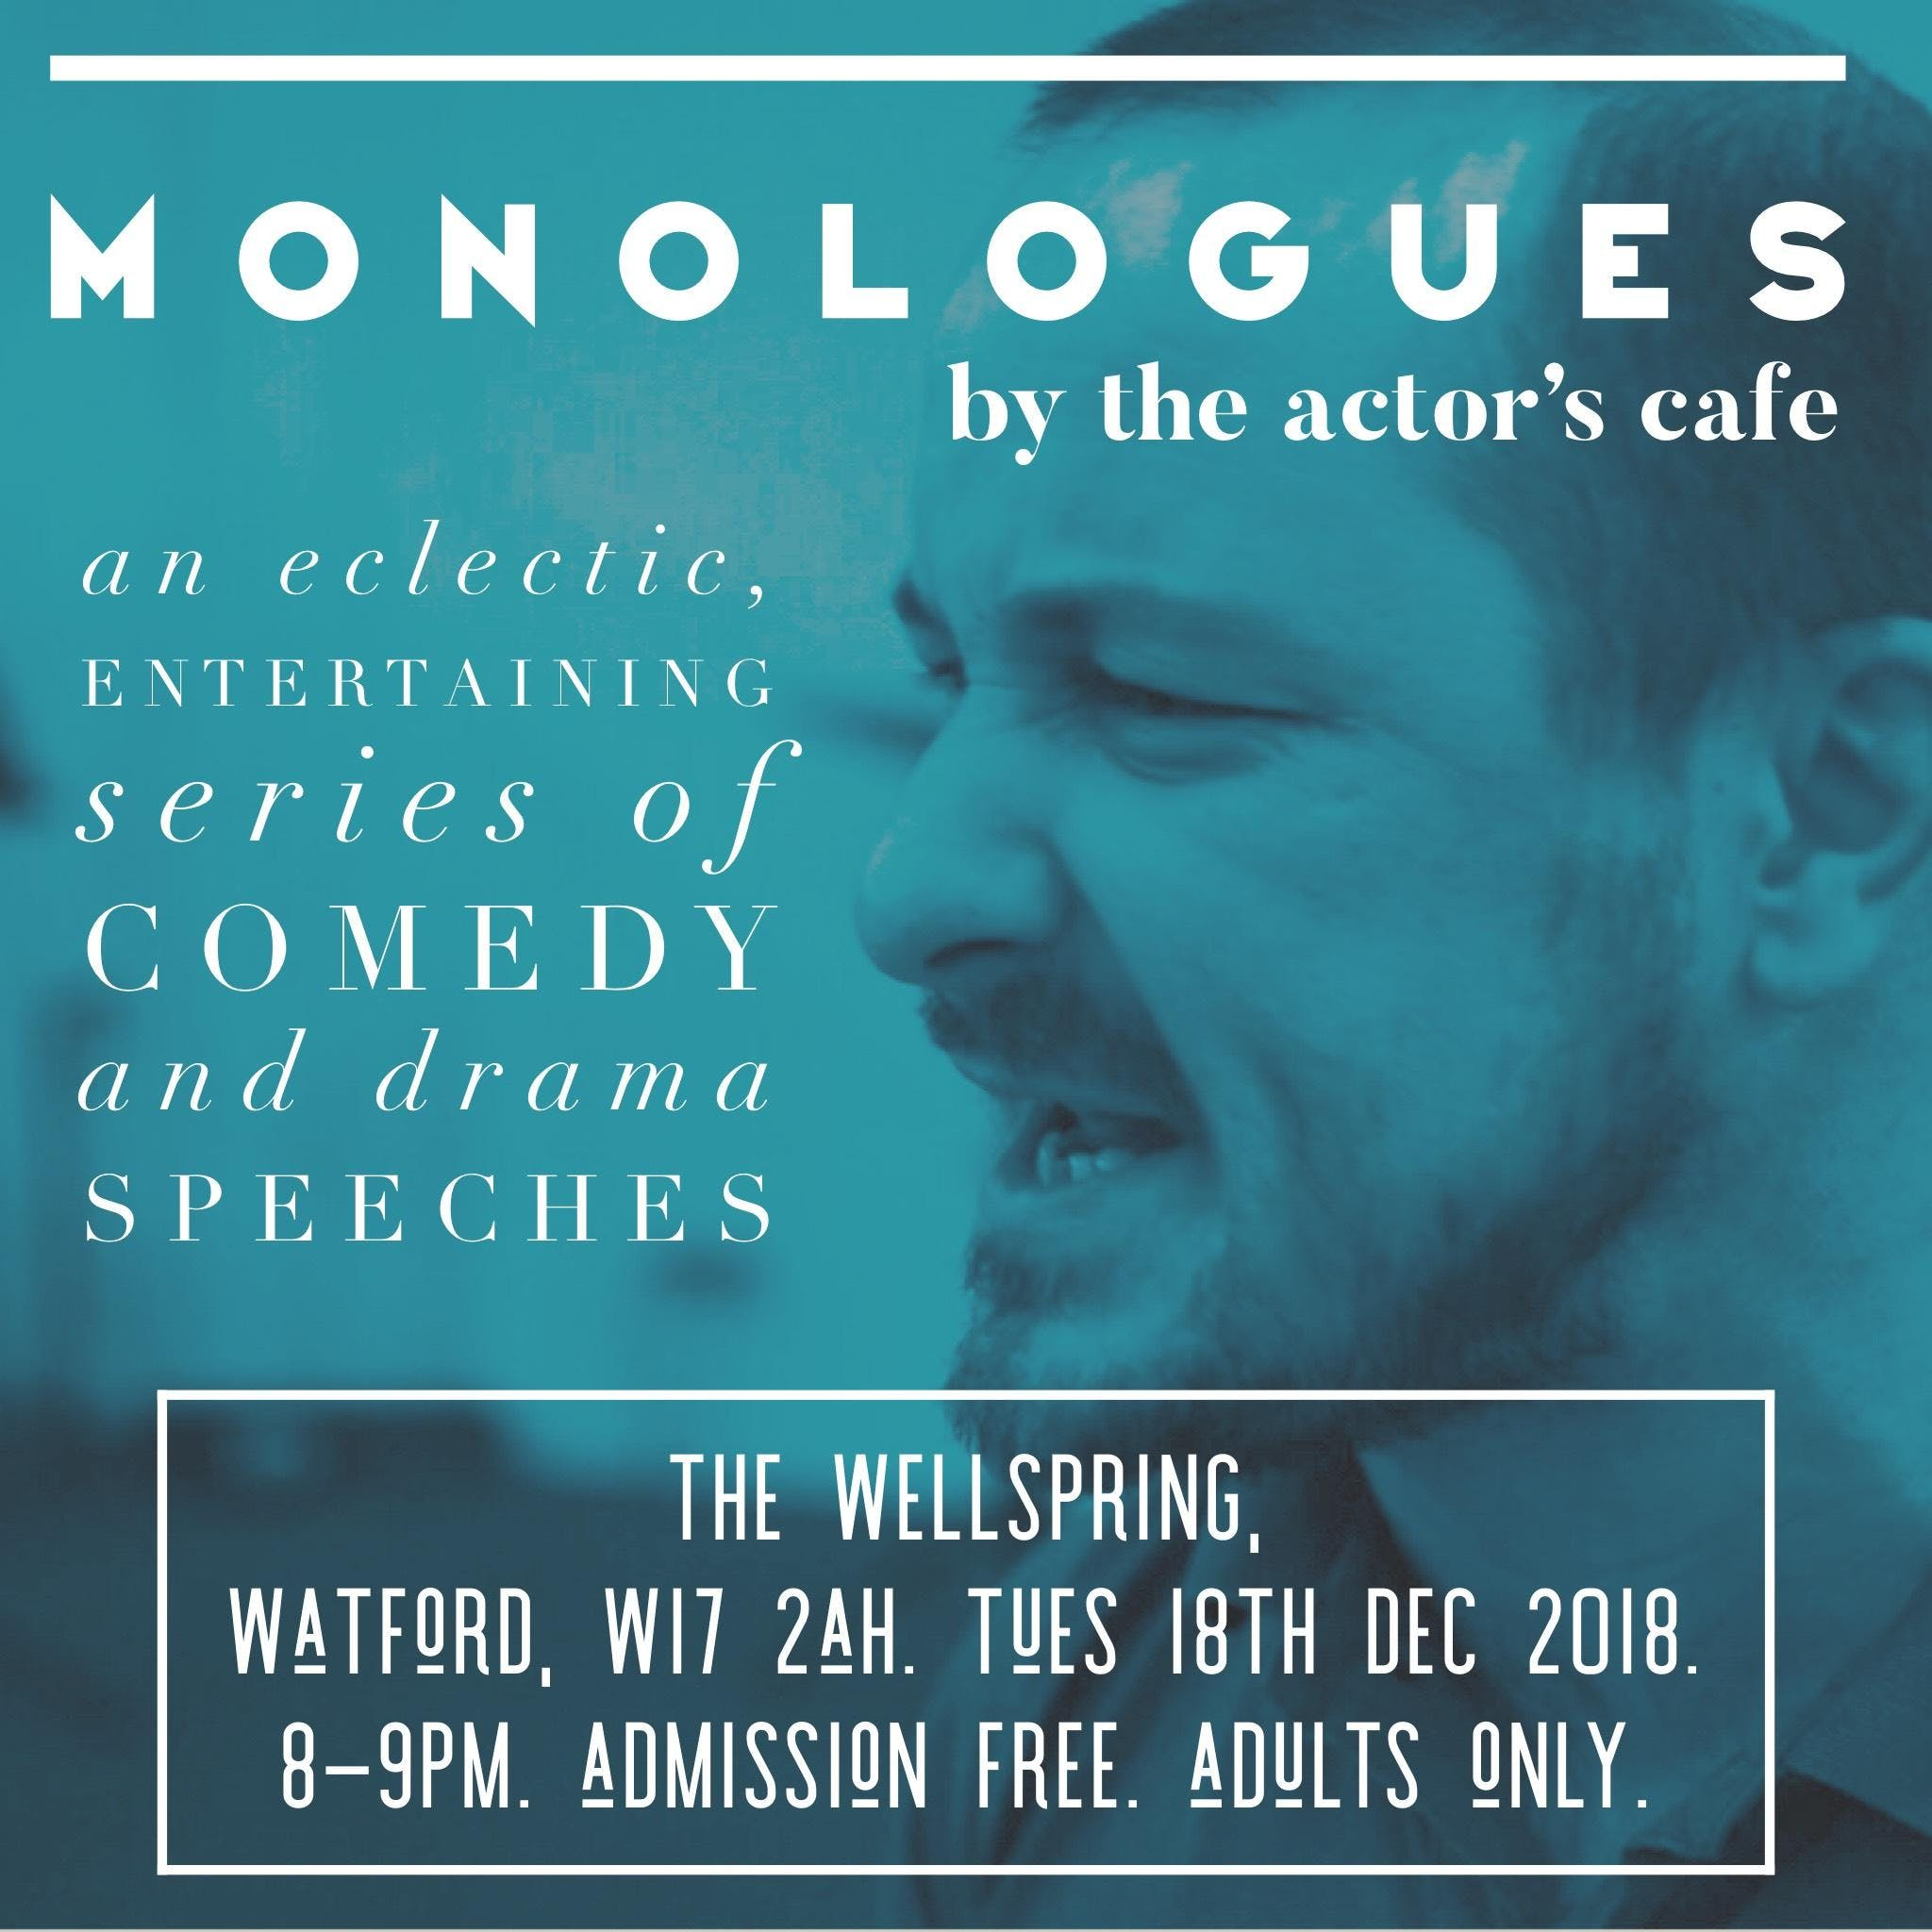 Monologues by The Actor's Cafe